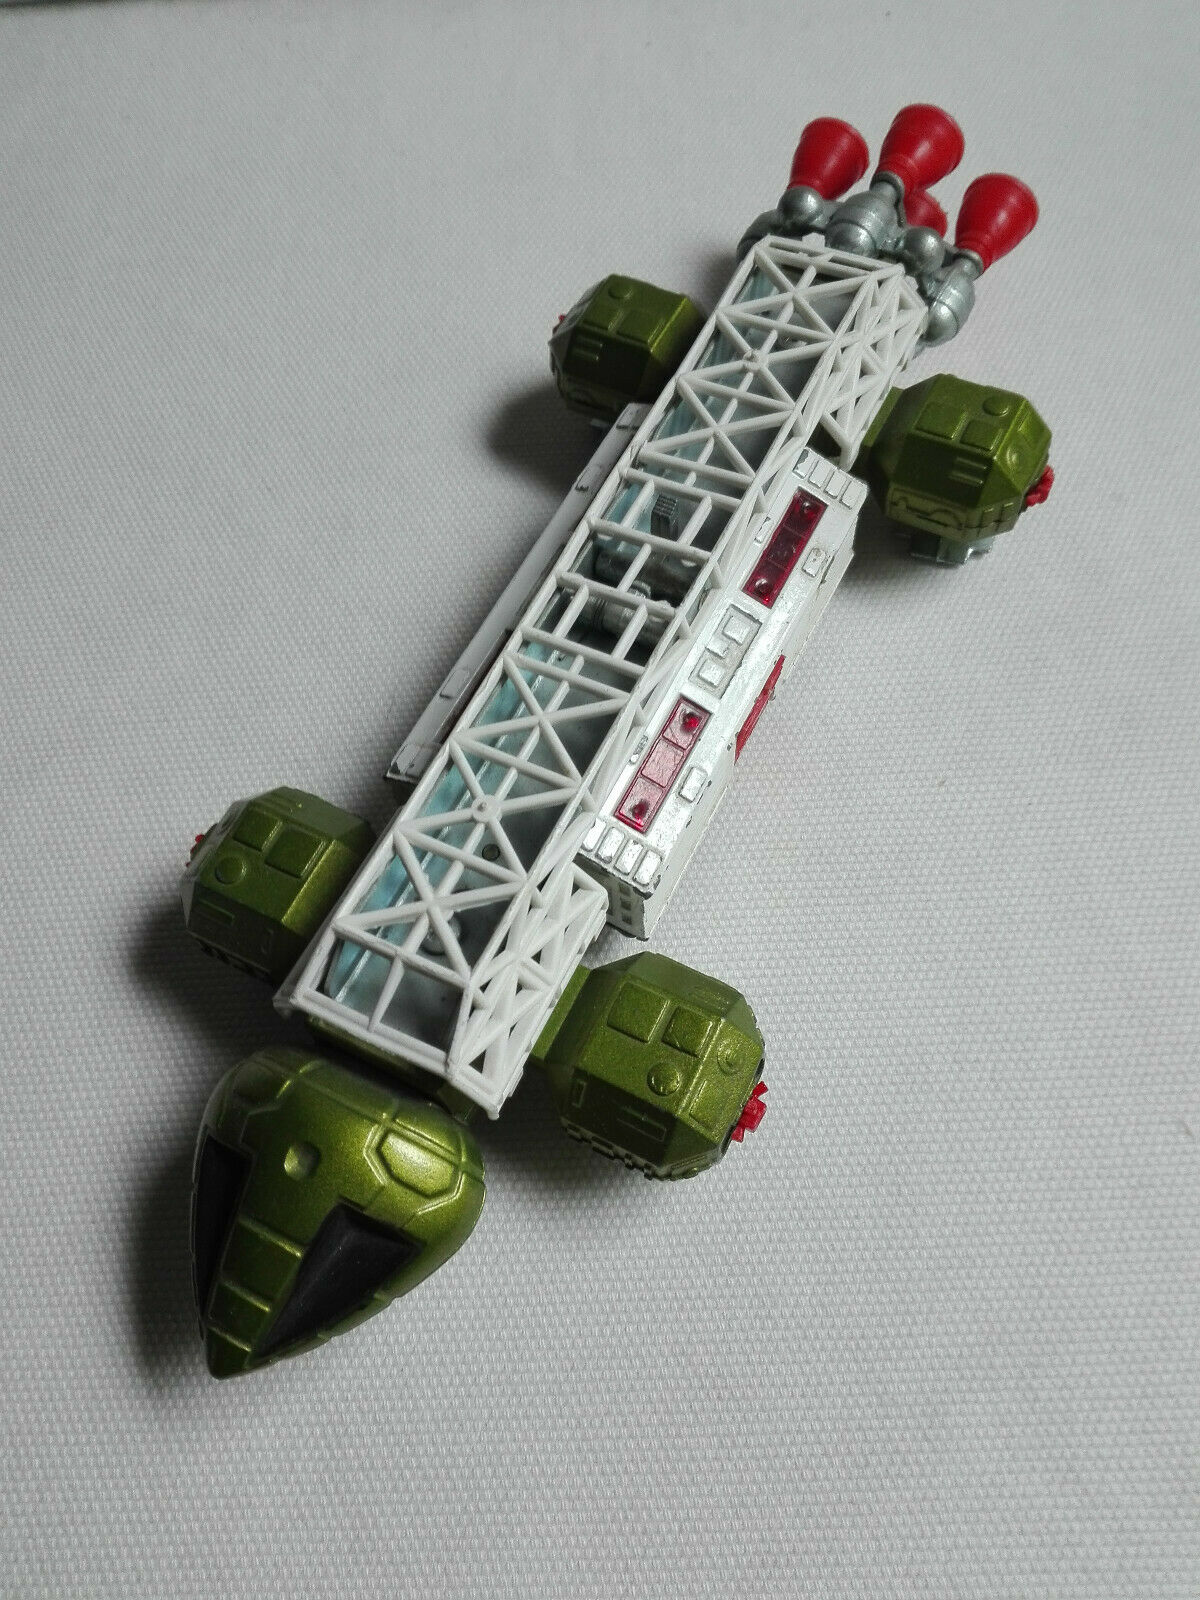 VINTAGE DINKY TOYS green/white EAGLE FREIGHTER TRANSPORTER SPACE 1999 G.ANDERSON